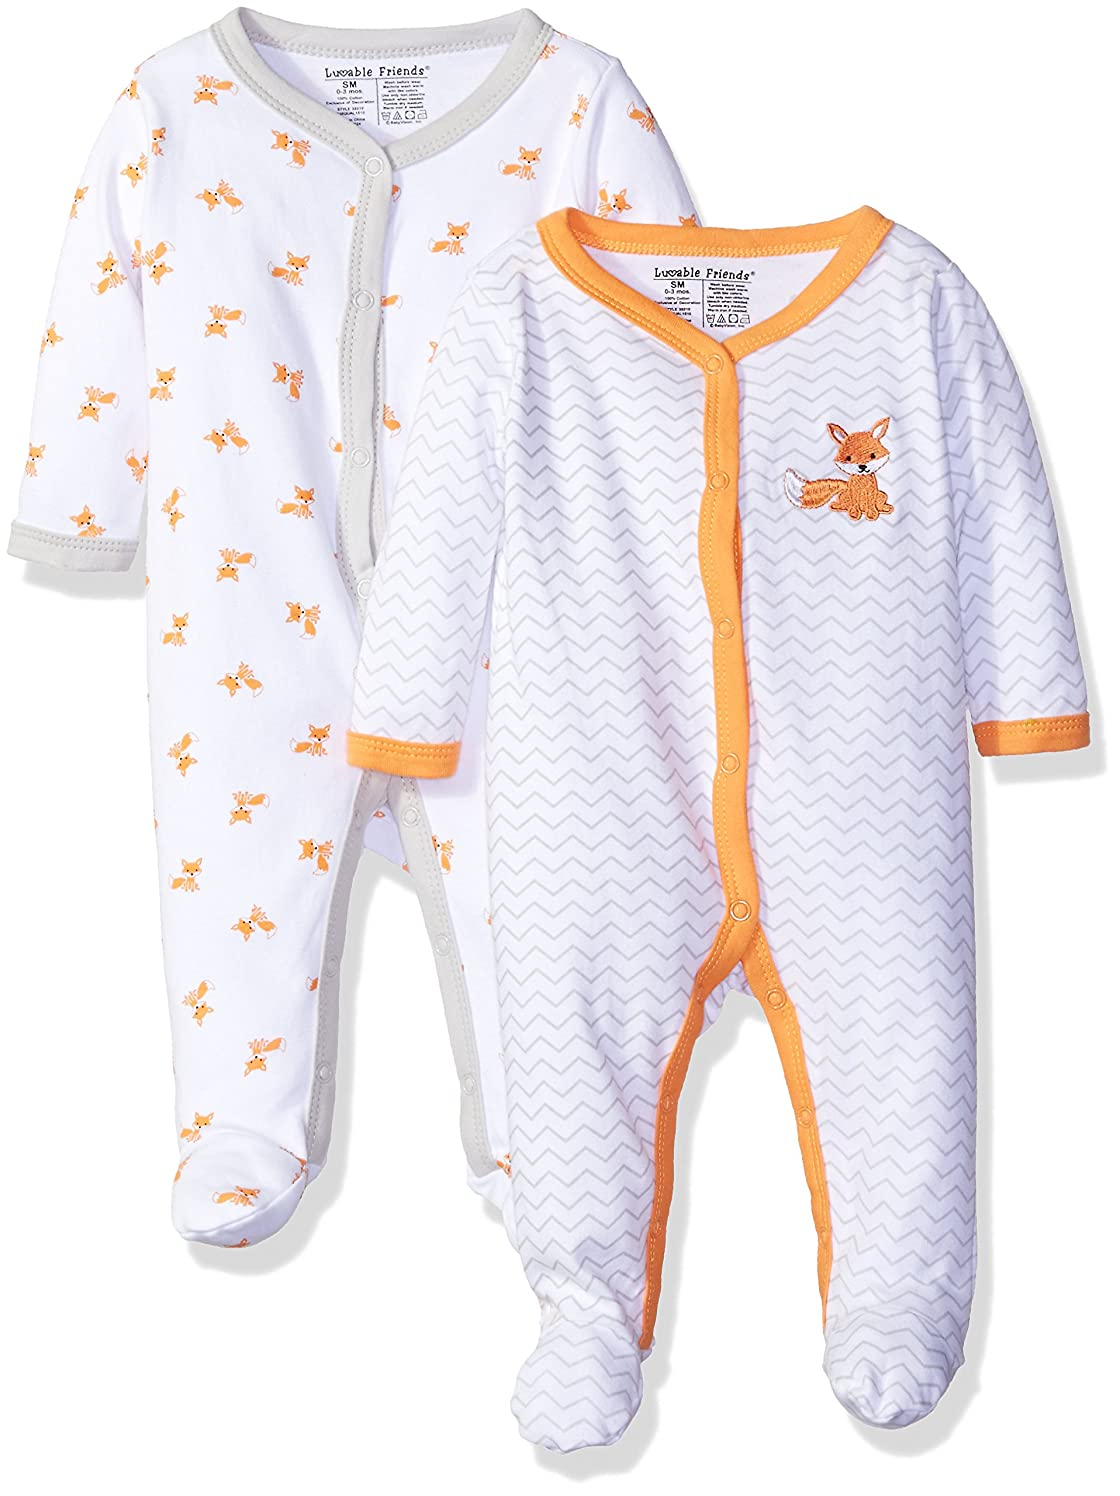 Luvable Friends Unisex Baby Sleep and Play